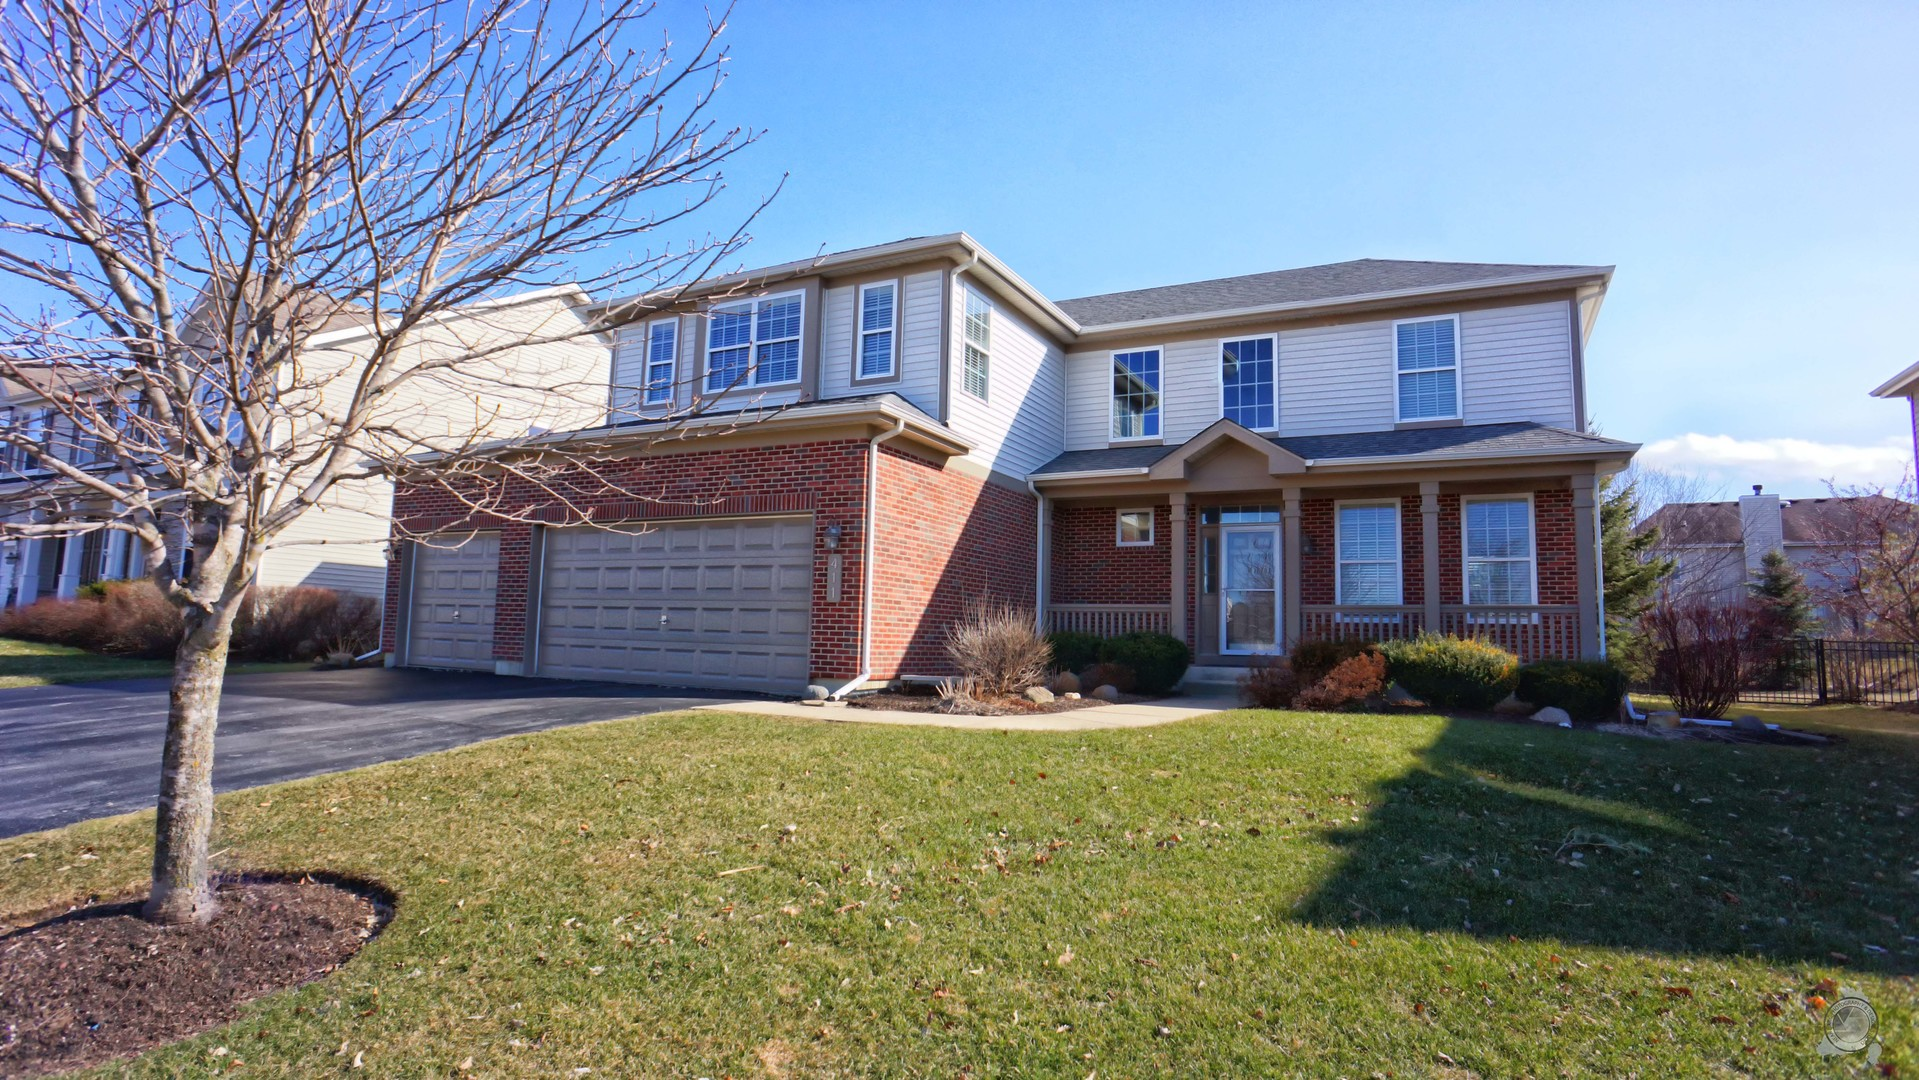 411 Cyprus Circle, Lake Villa, Illinois 60046